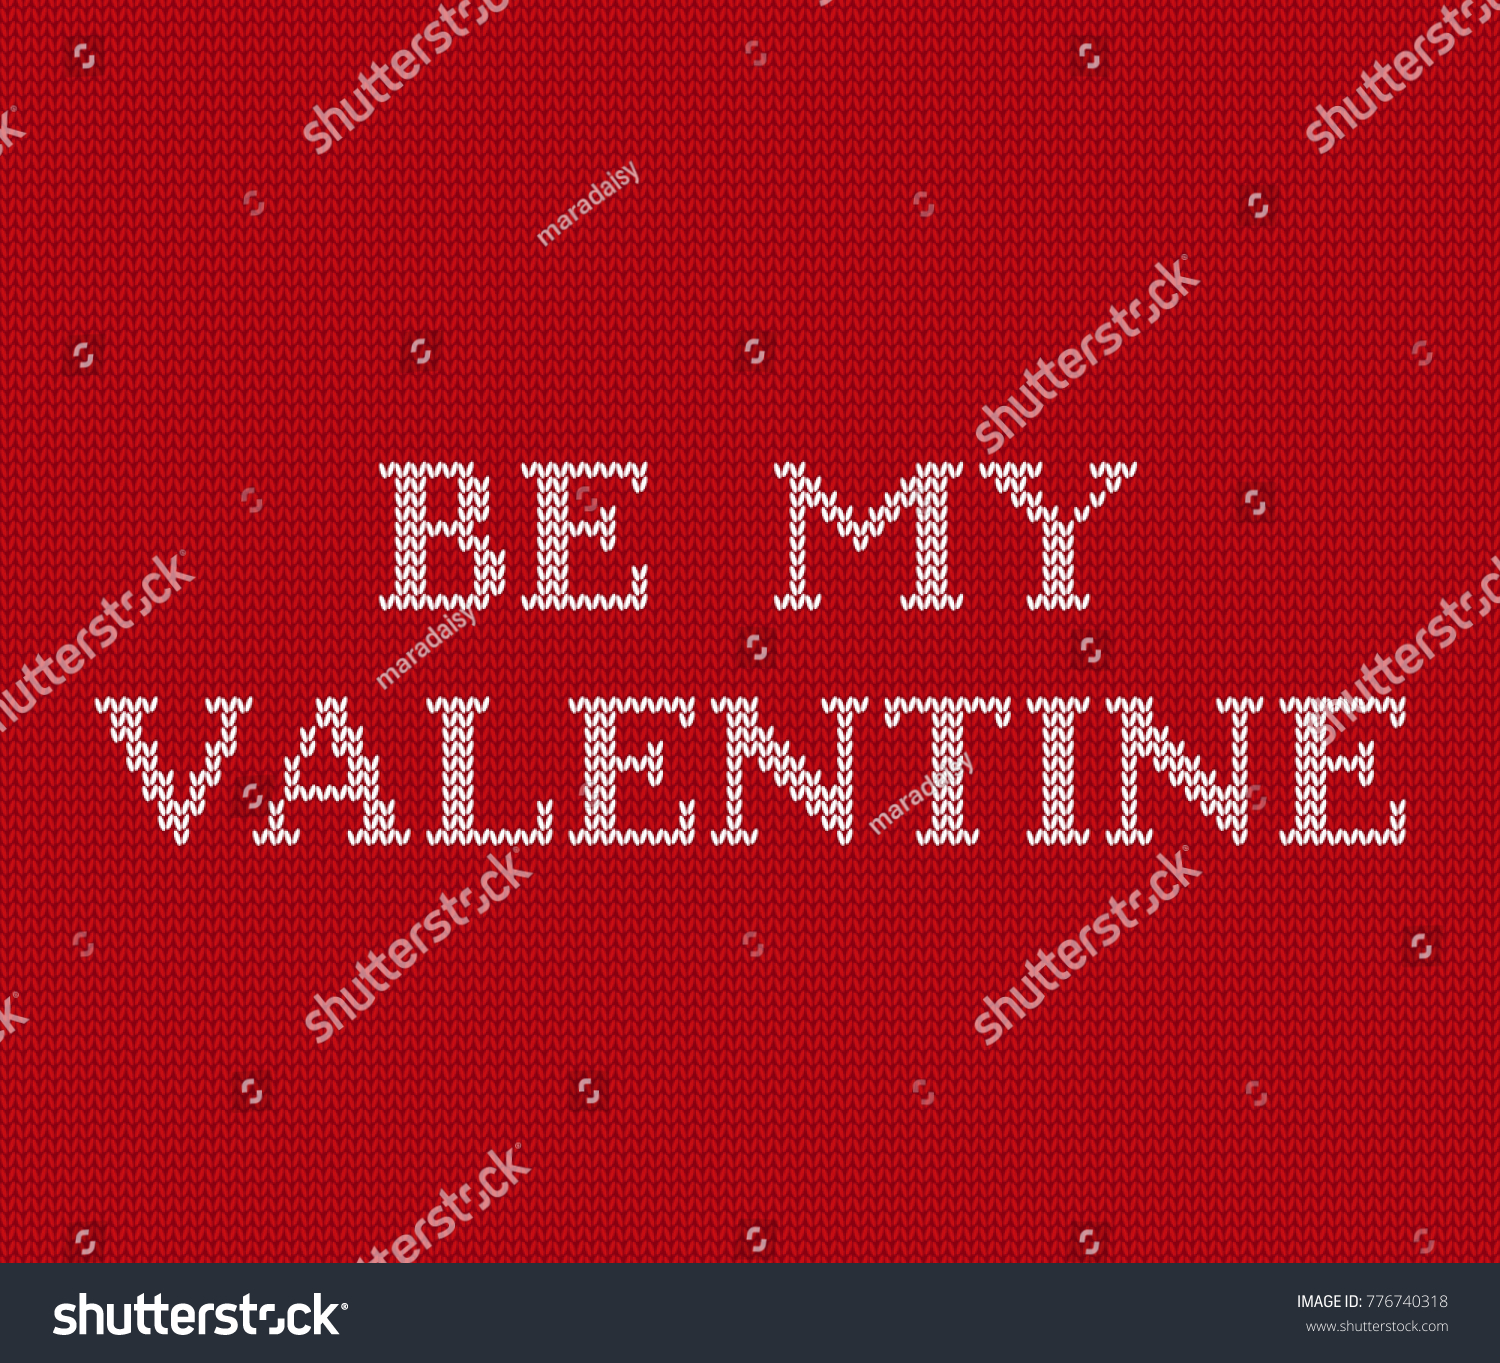 Valentines Background Knit Seamless Pattern Text Stock Vector ...